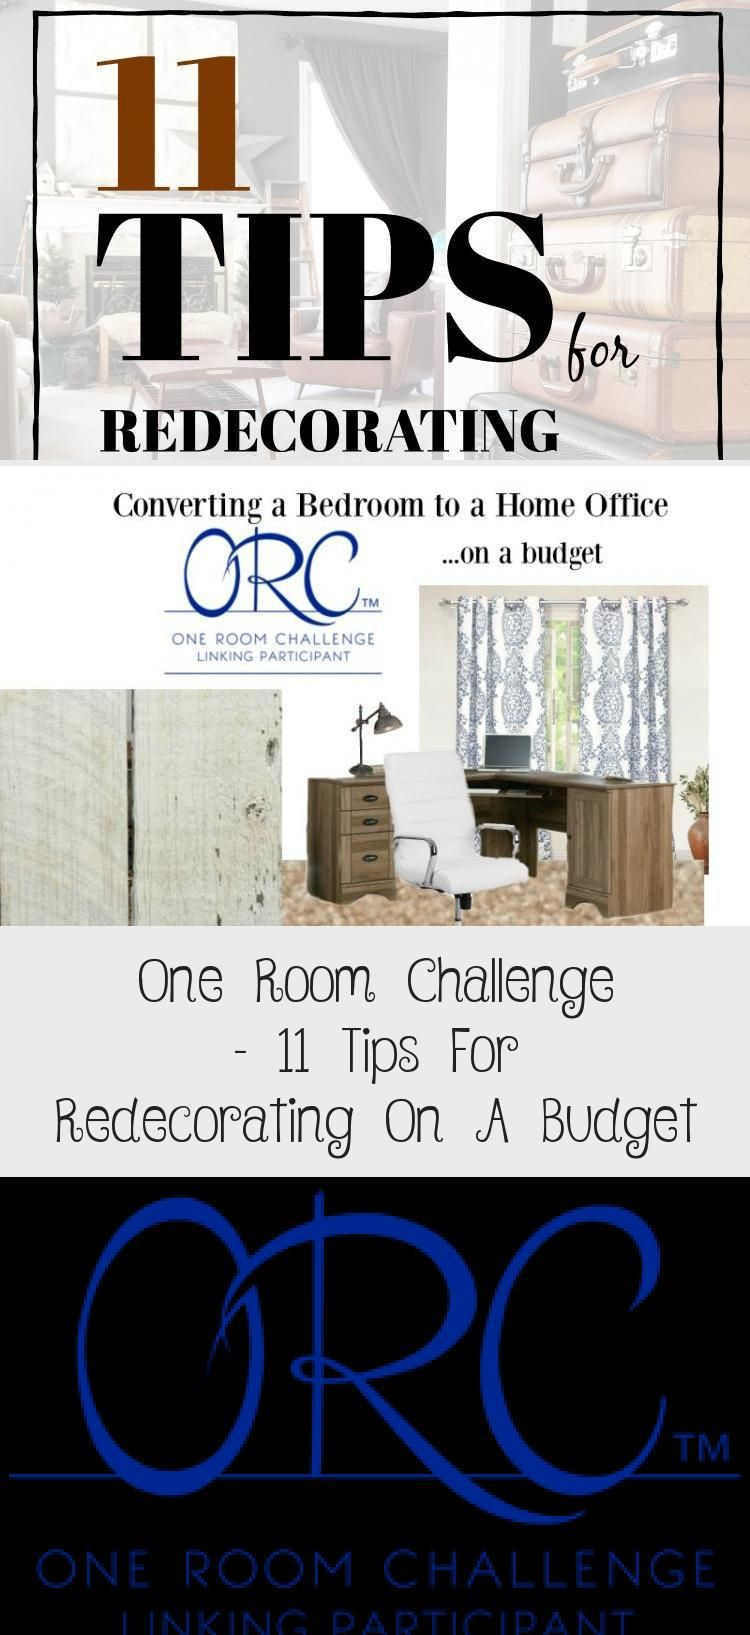 How to redecorate on a budget.  Here are some tips.  Find more on salvagesisterandmister.com #HomeDecorDIYVideosApartment #HomeDecorDIYVideosIdeas #HomeDecorDIYVideosCheap #HomeDecorDIYVideosLivingRoom #HomeDecorDIYVideosBedroom